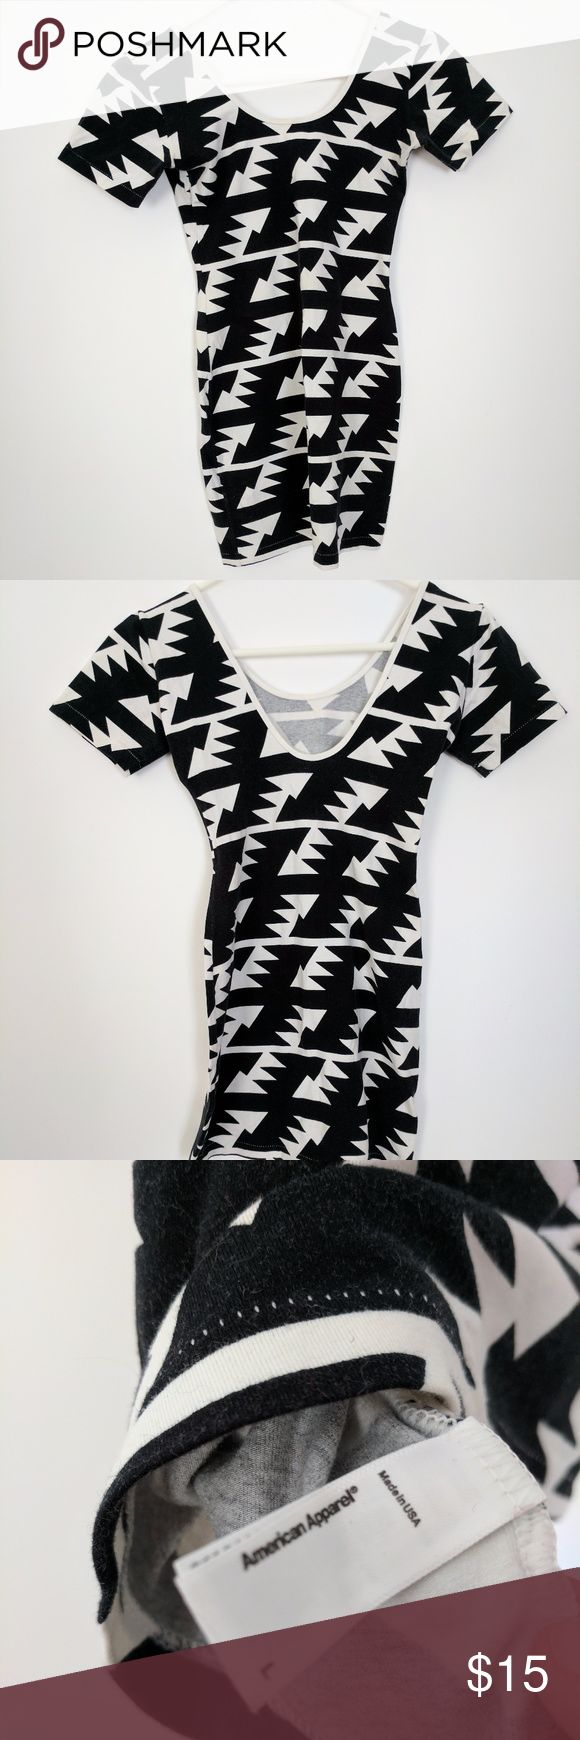 American Apparel Aztec Bodycon Dress Size L EUC Form-fitting American Apparel dress in a bold black and white graphic 'aztec' print. Label says size large, but like most AA items, this seems to run small. American Apparel Dresses Mini